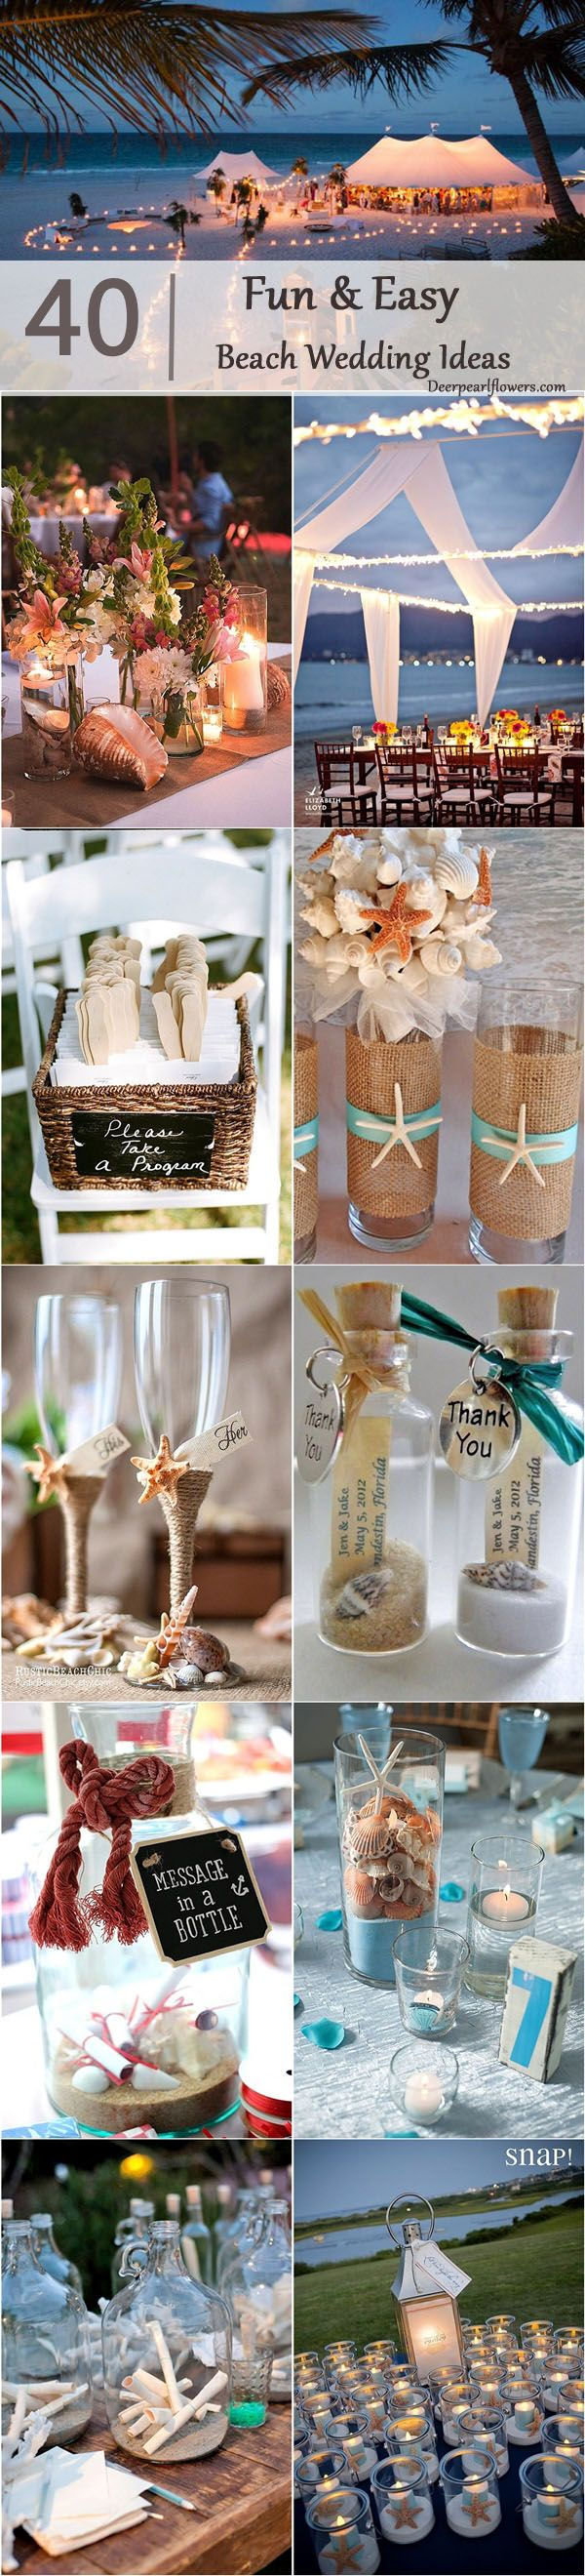 Beach wedding ideas rustic beach wedding decor